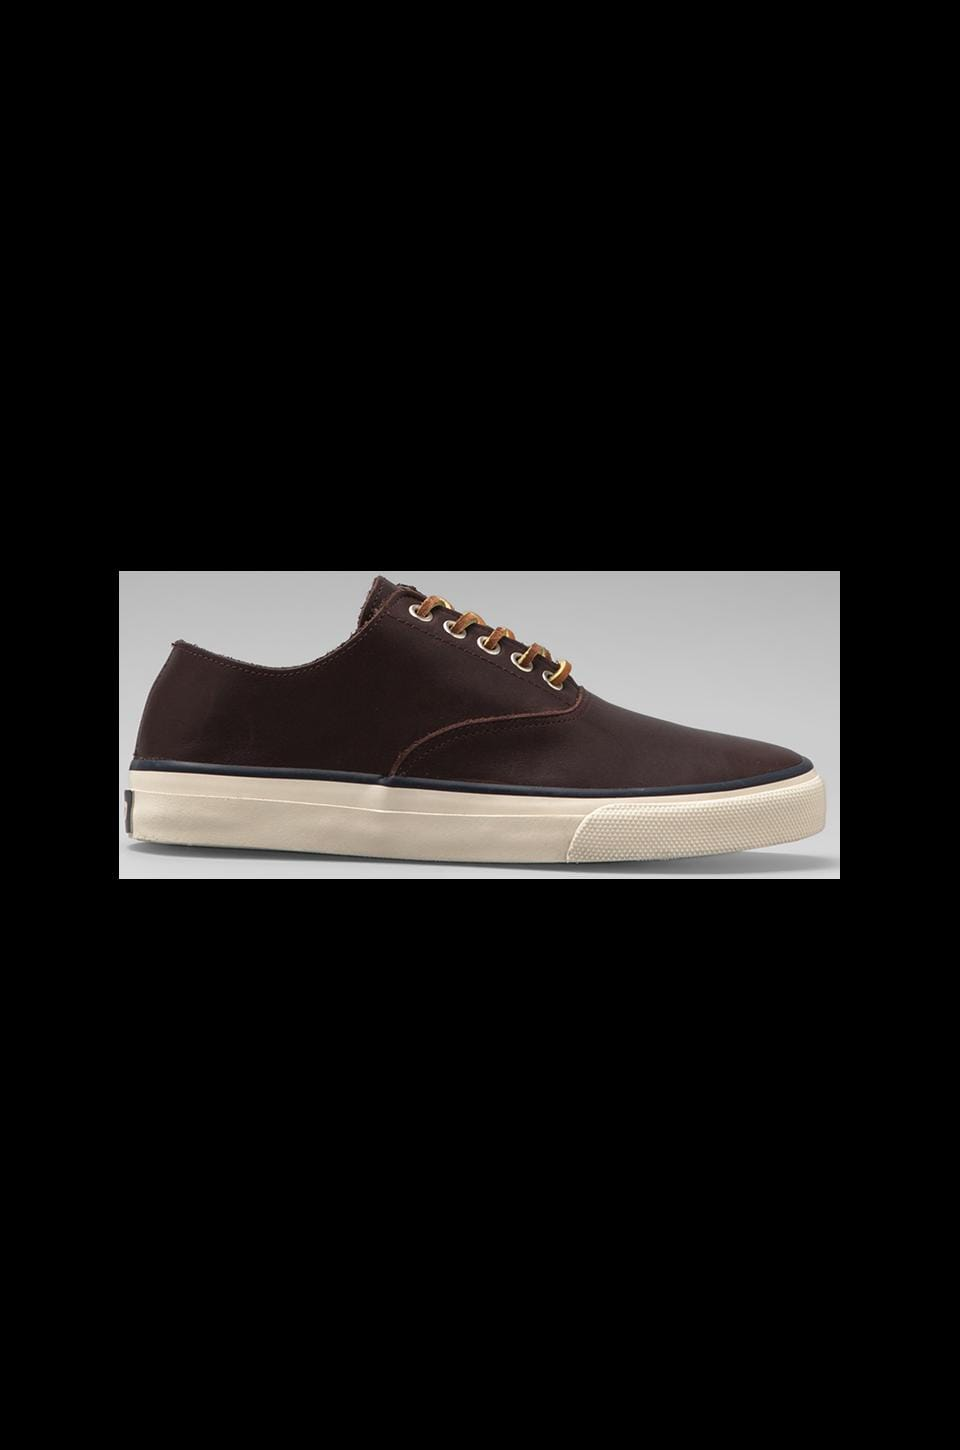 Sperry Top-Sider CVO Leather in Amaretto